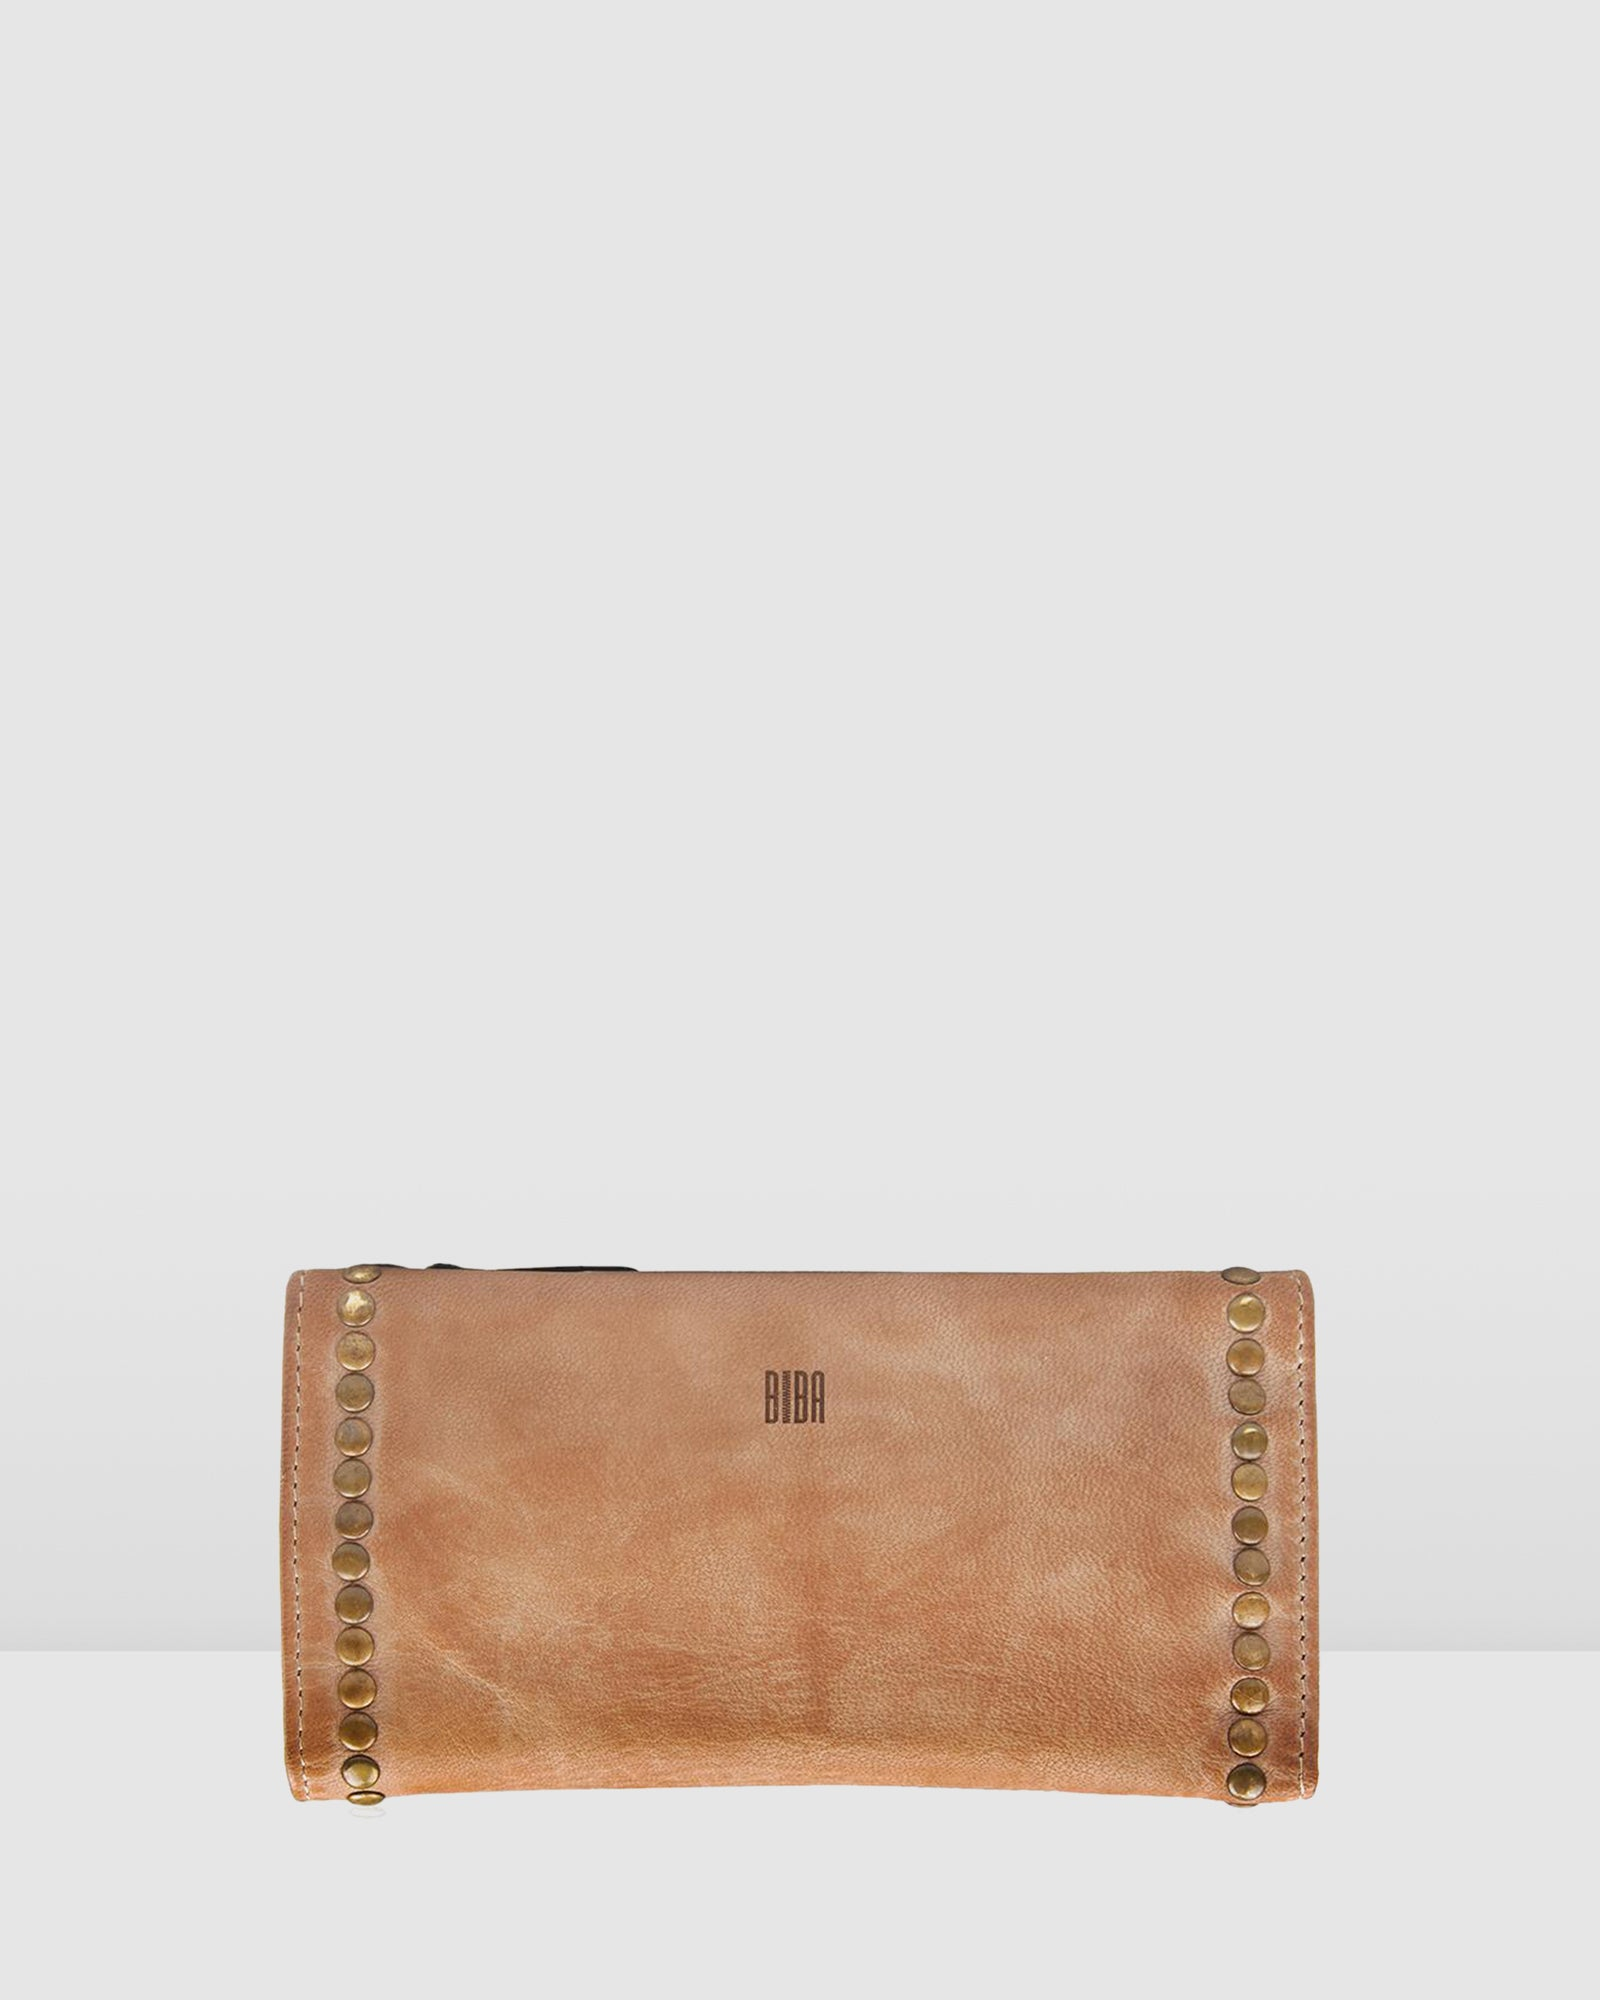 BIBA PORTLAND WALLET TAUPE LEATHER